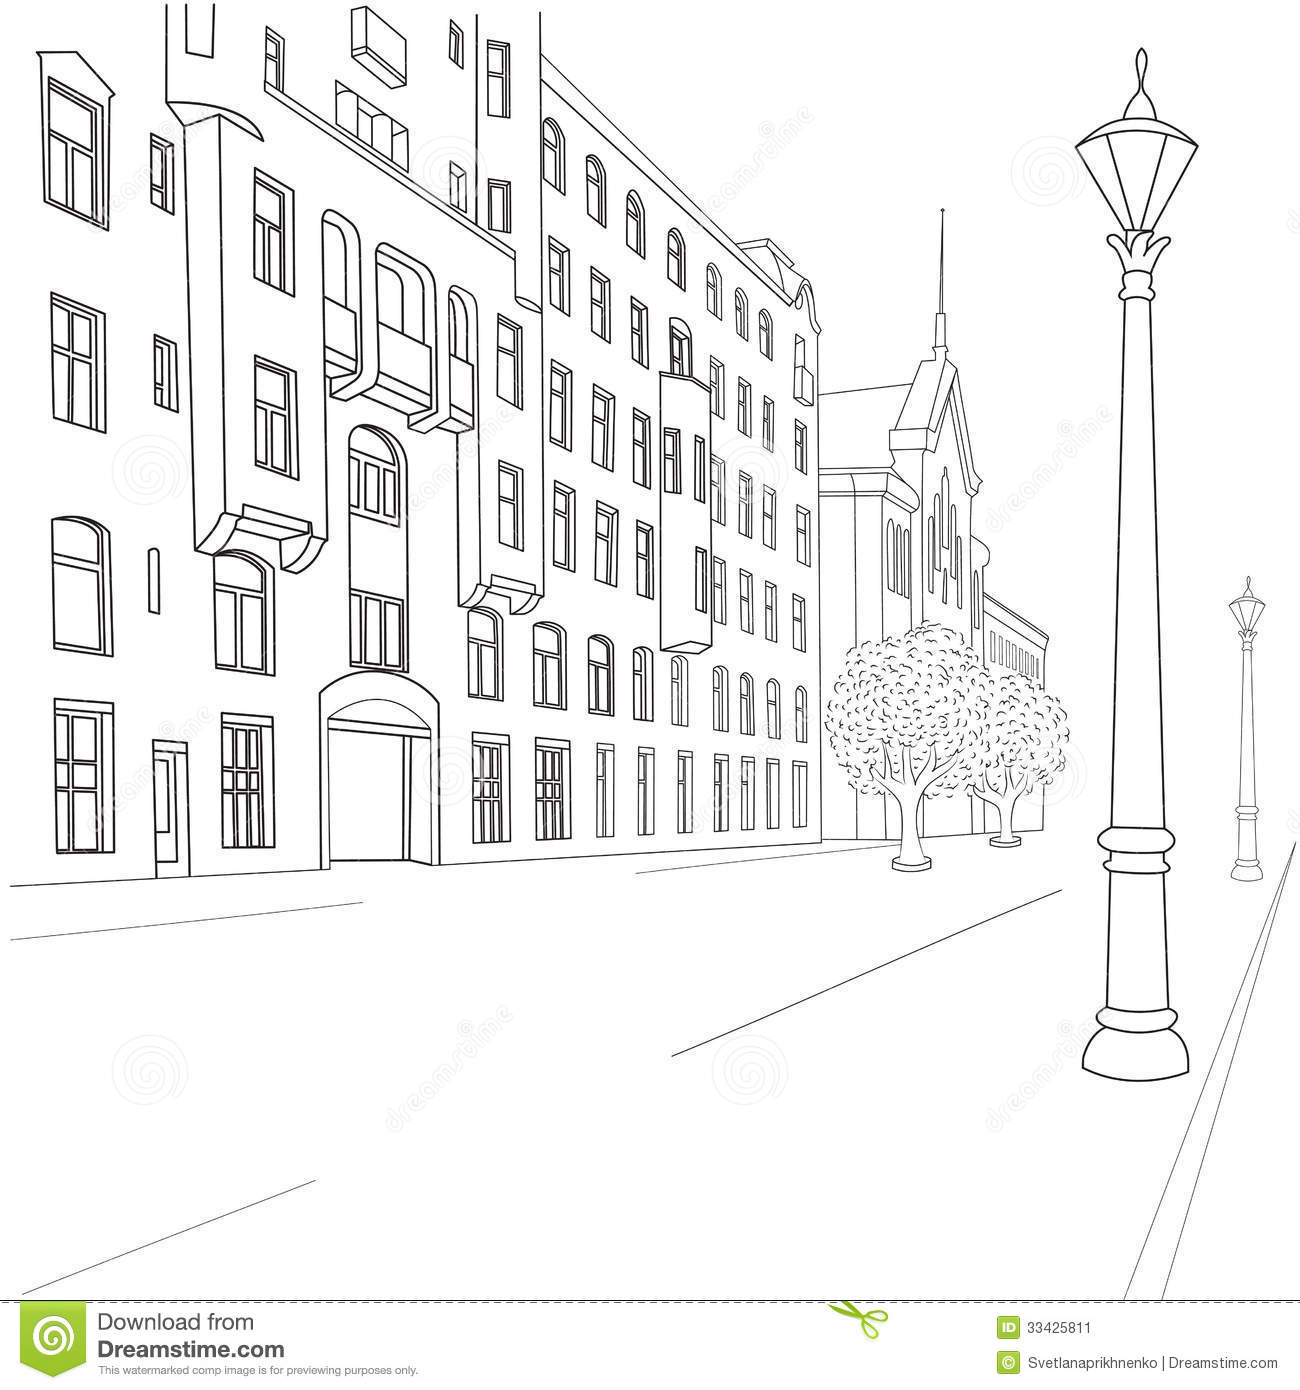 Stock Image City Street Outline Sketch European Image33425811 besides Day Care Facility Floor Plans besides Royalty Free Stock Photo Modern Interior Design Bathroom Freehand Drawing Image13298935 moreover Stock Images Clock Different Symbols Image1988854 together with Stock Image Airplane Cartoon Outline Vector Isolated White Background Image35141911. on floor plans you sketch